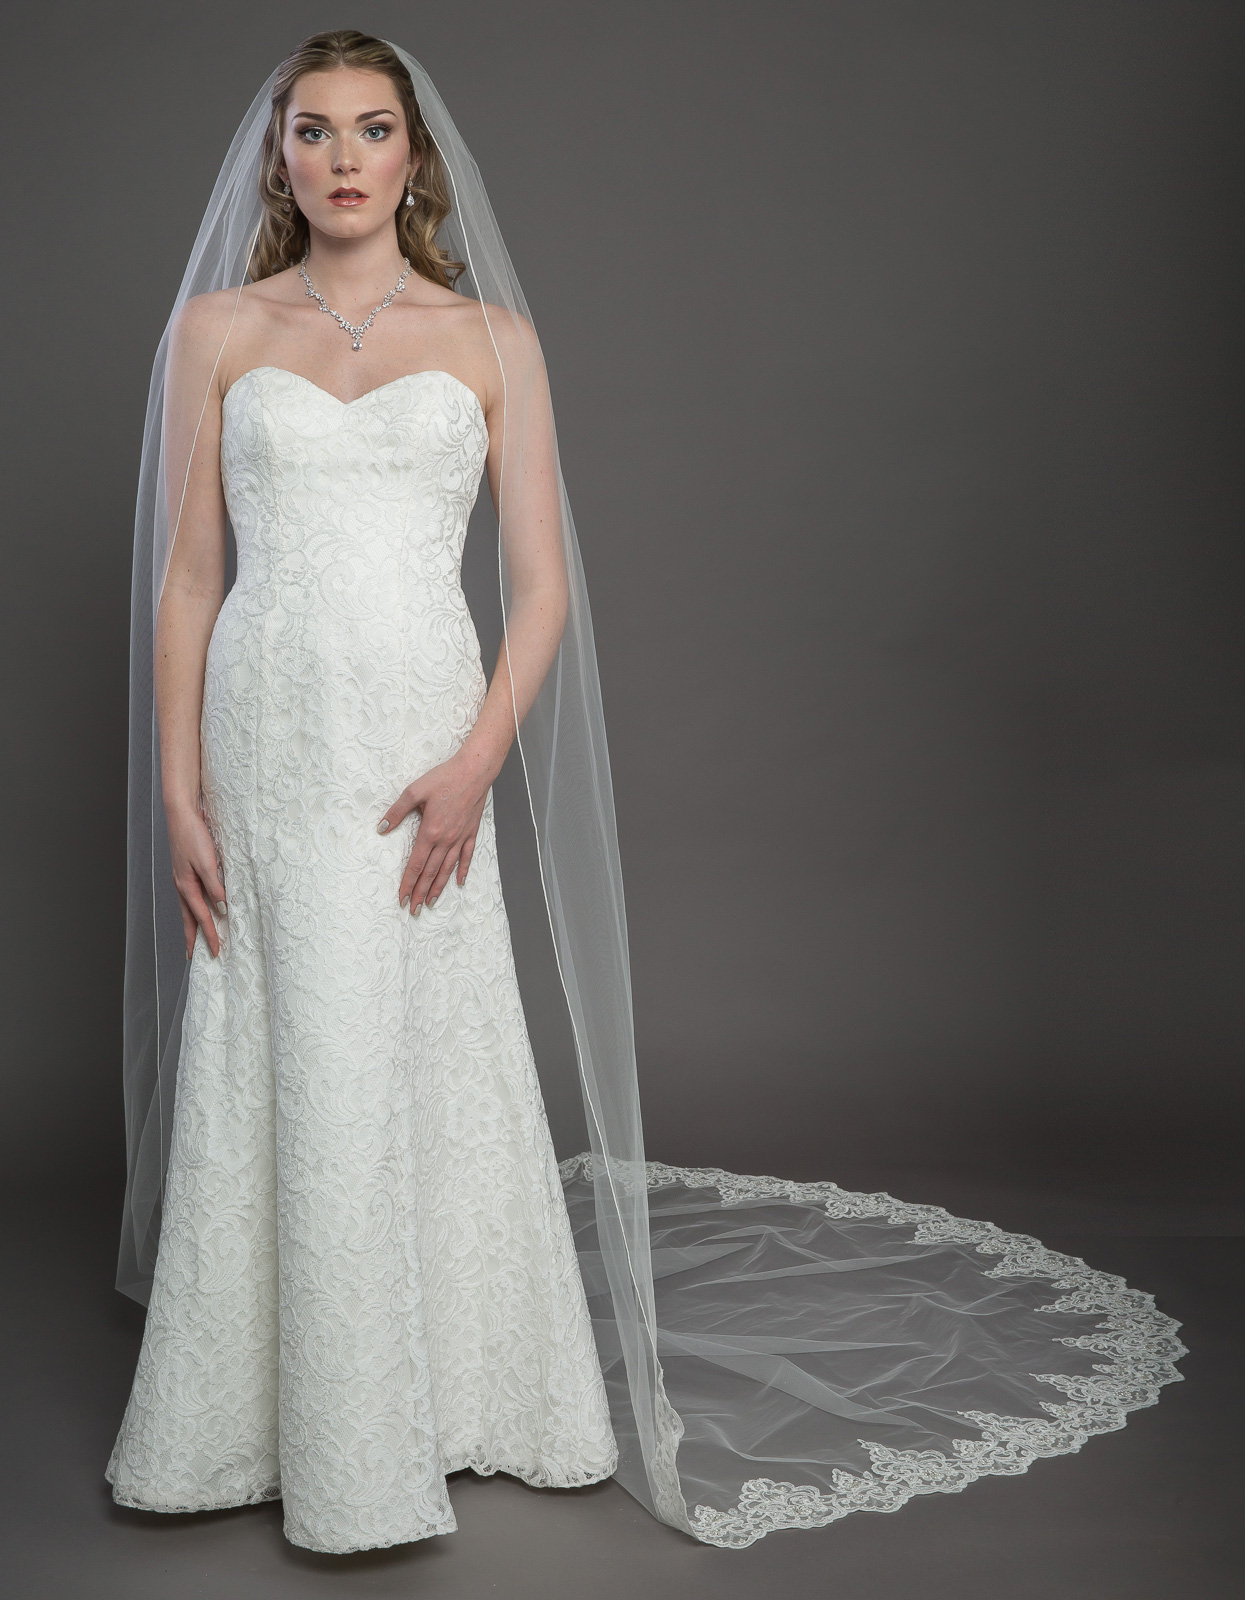 Bridal Classics Marquise Veil Collection MV-2432